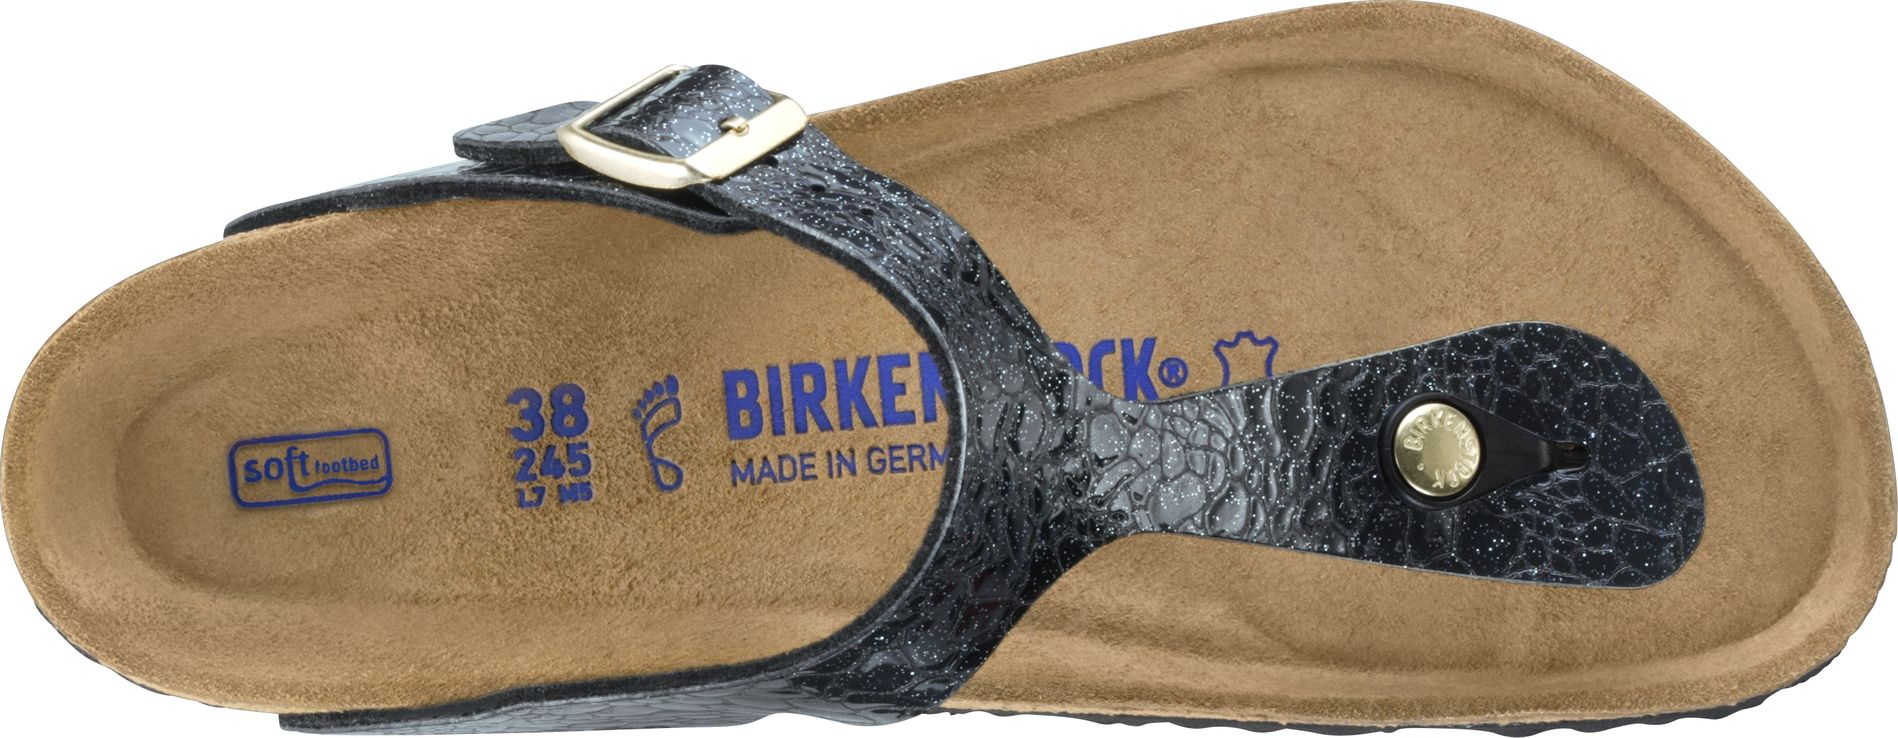 fb36192681d9 ... Preview  Birkenstock Gizeh Myda Night Soft Footbed